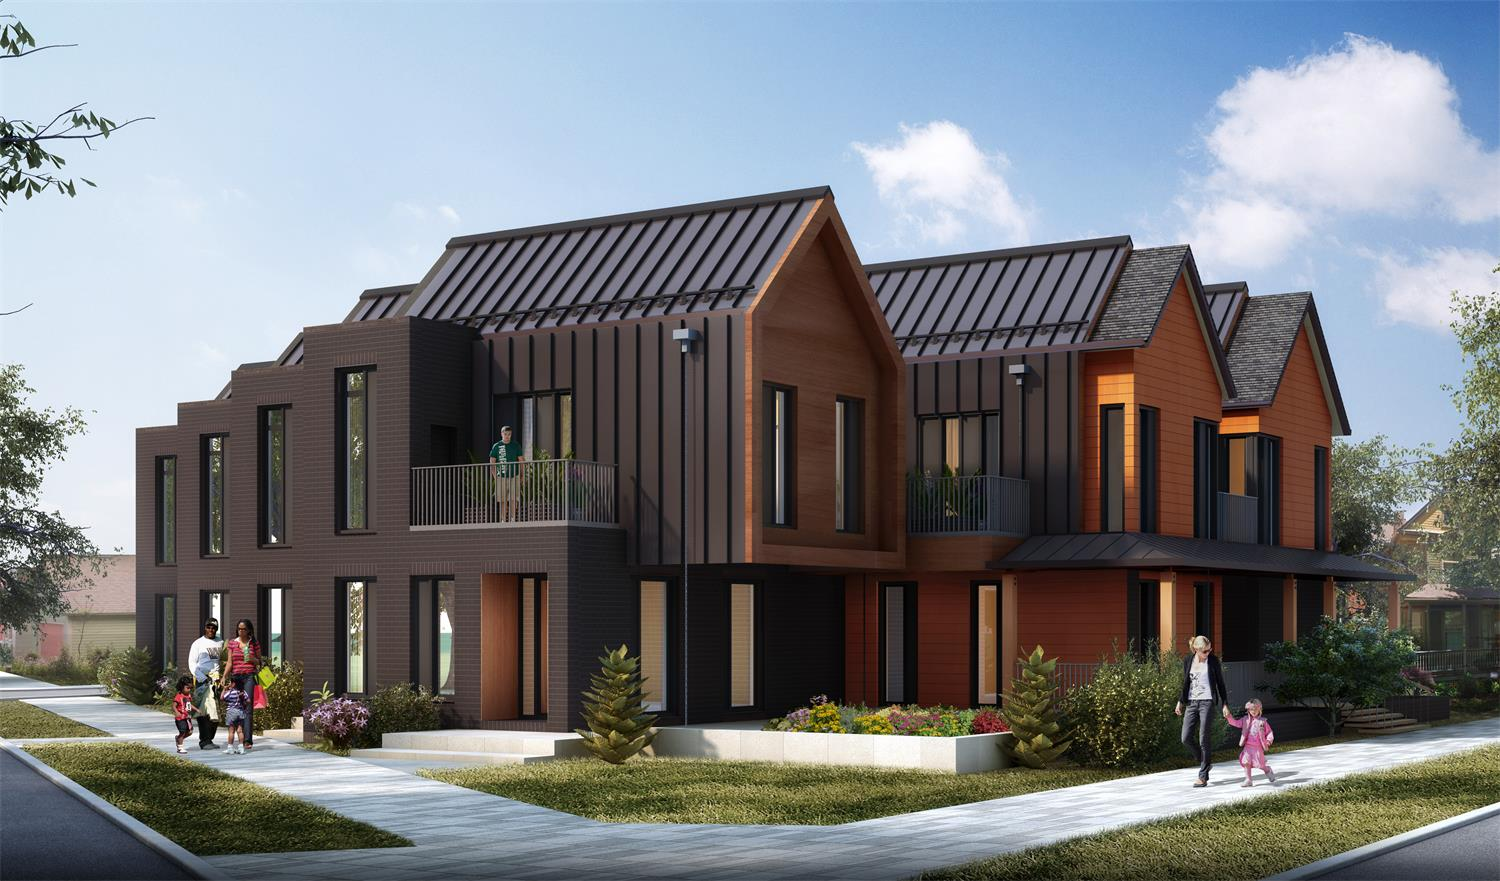 3D Visualization of Whitman Ohio City Townhomes